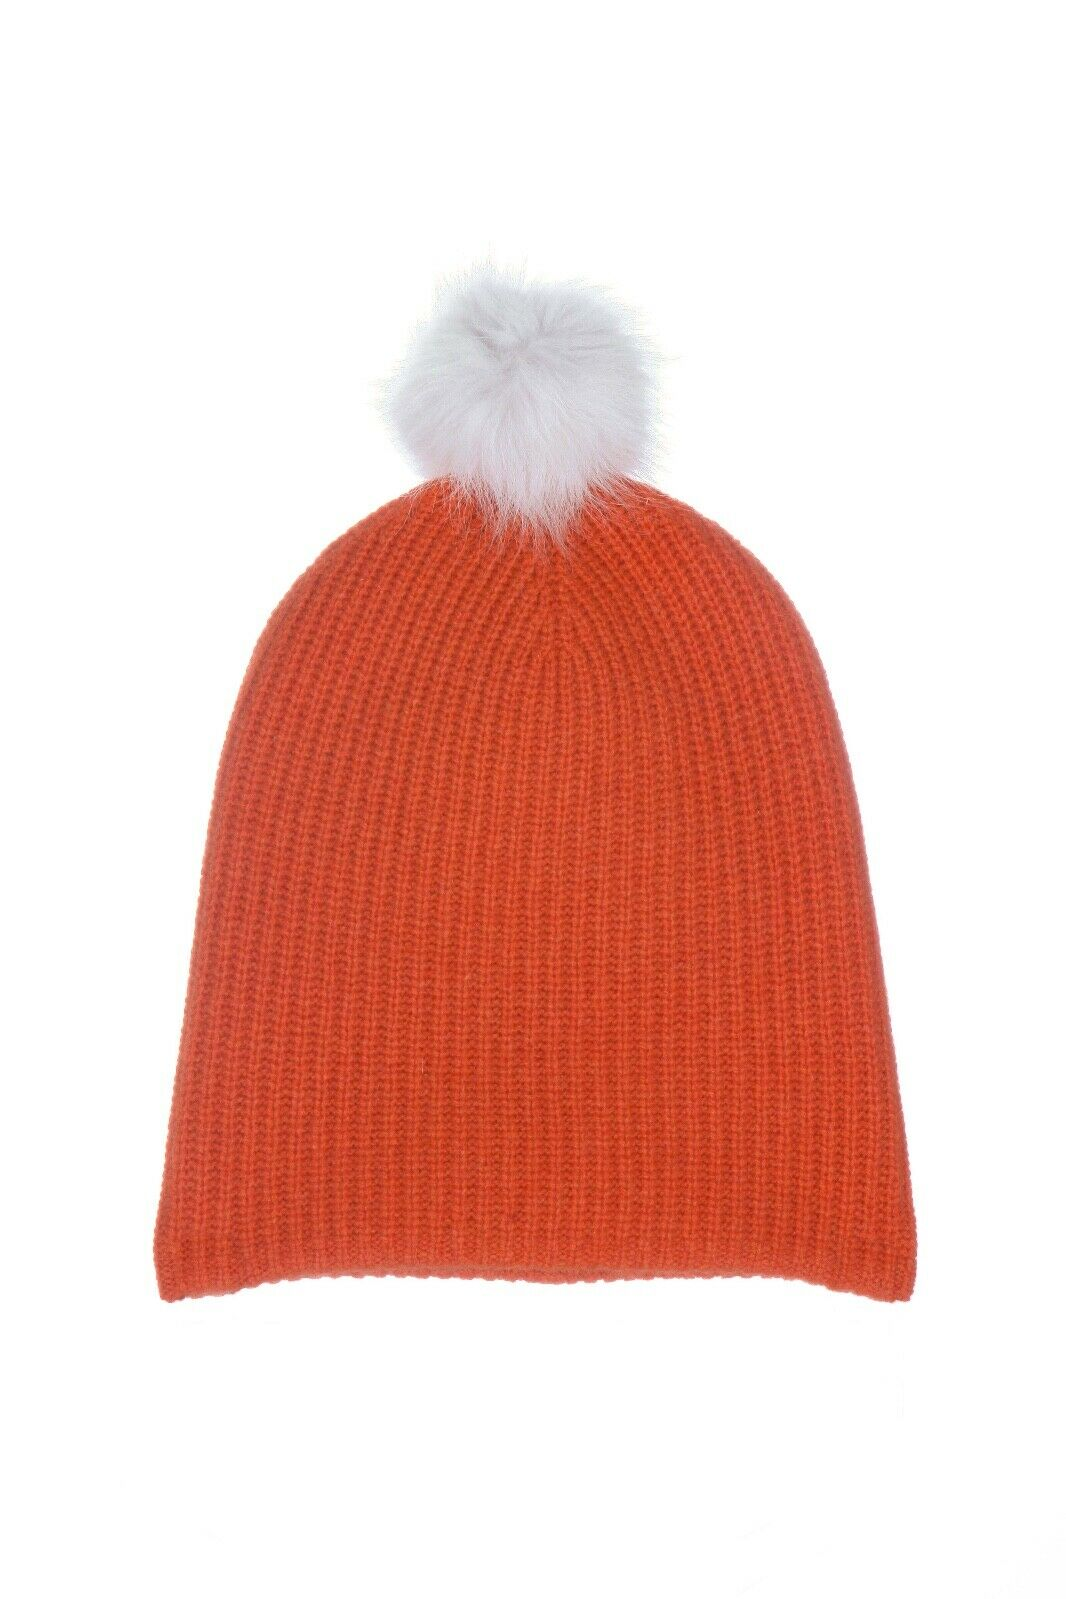 RAG & BONE Cashmere Wool  Knit Beanie Hat With Fur Pom